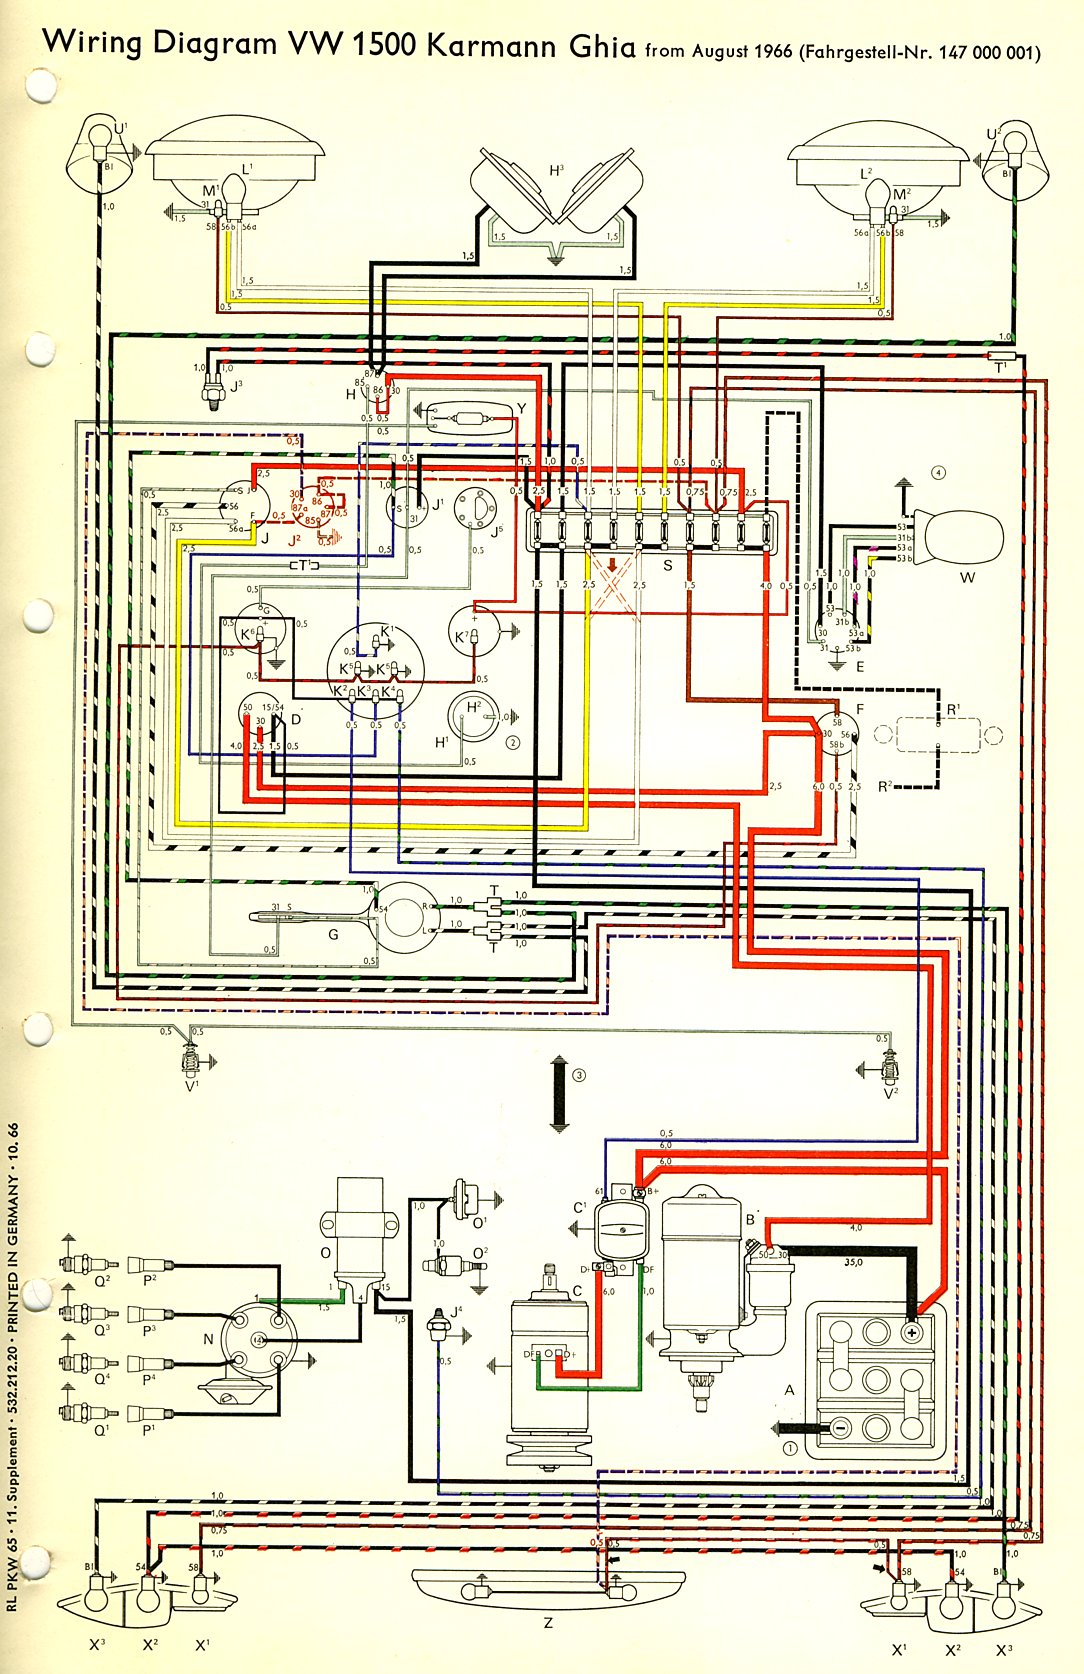 1964 Volkswagen Karmann Ghia Wiring Diagram Library 1966 Charger